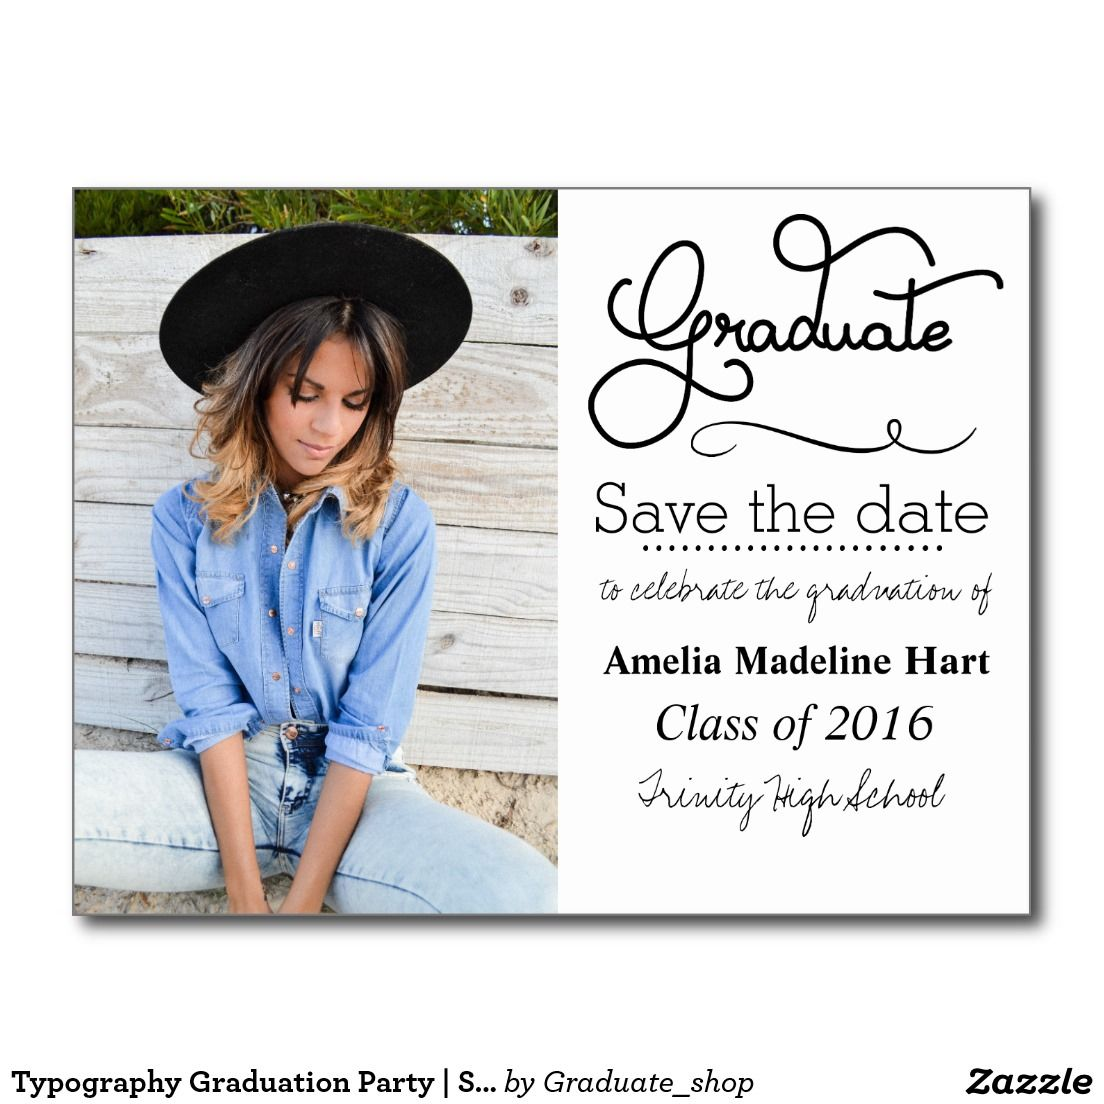 Typography Graduation Party Save The Date Photo Announcement Postcard Zazzle Com Save The Date Photos Photo Announcement Graduation Party